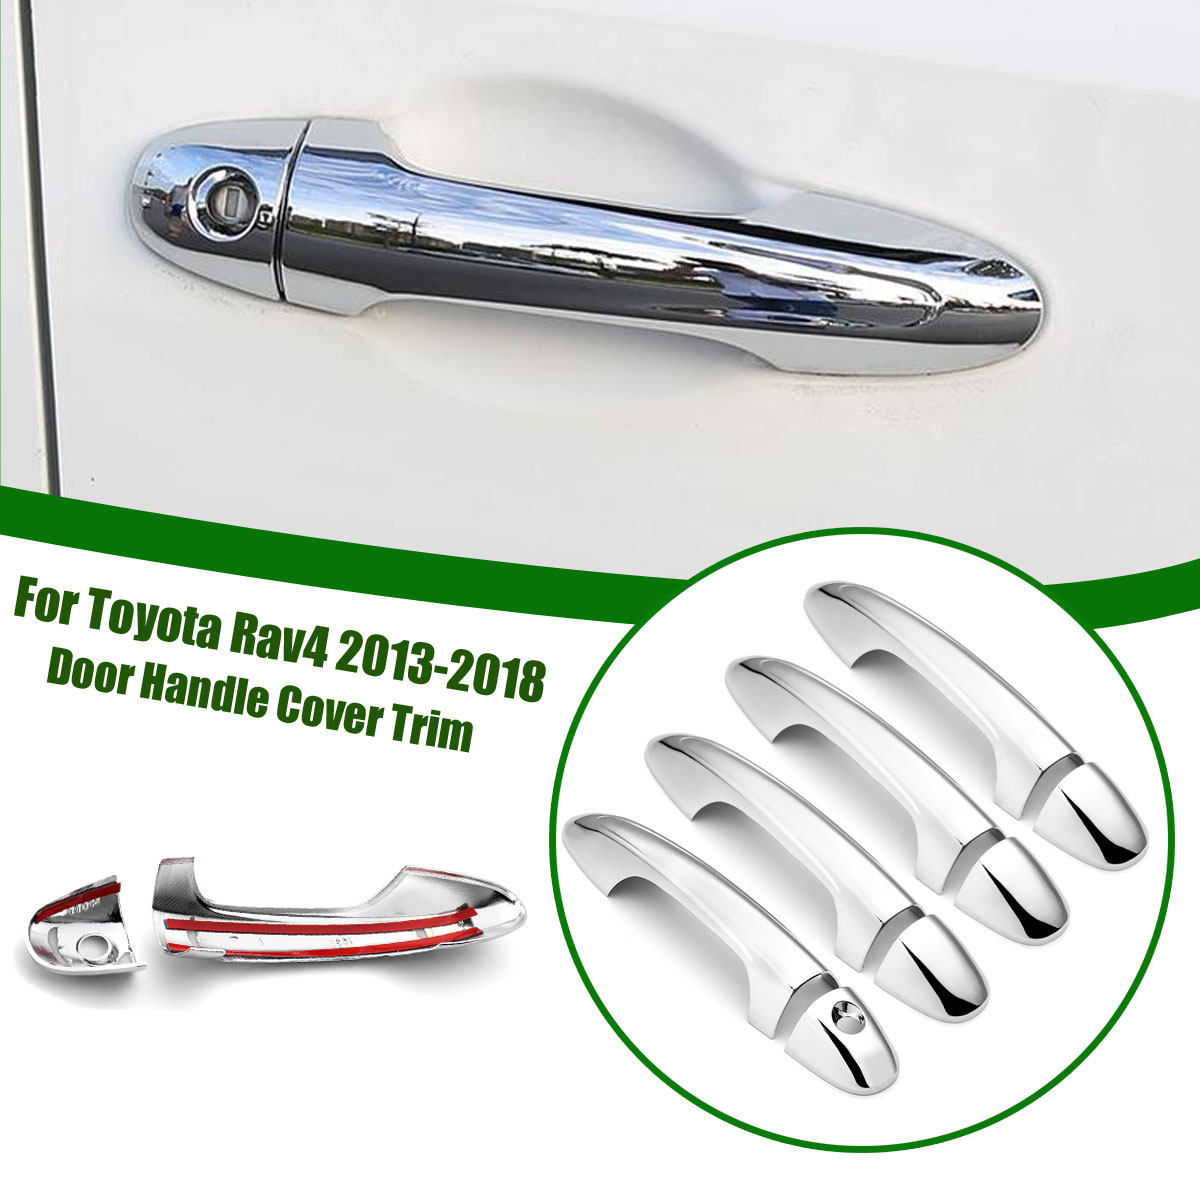 8Pcs Door Handle Cover for Toyota Rav4 2013 2014 2015 2016 2017 2018 Chrome Trim